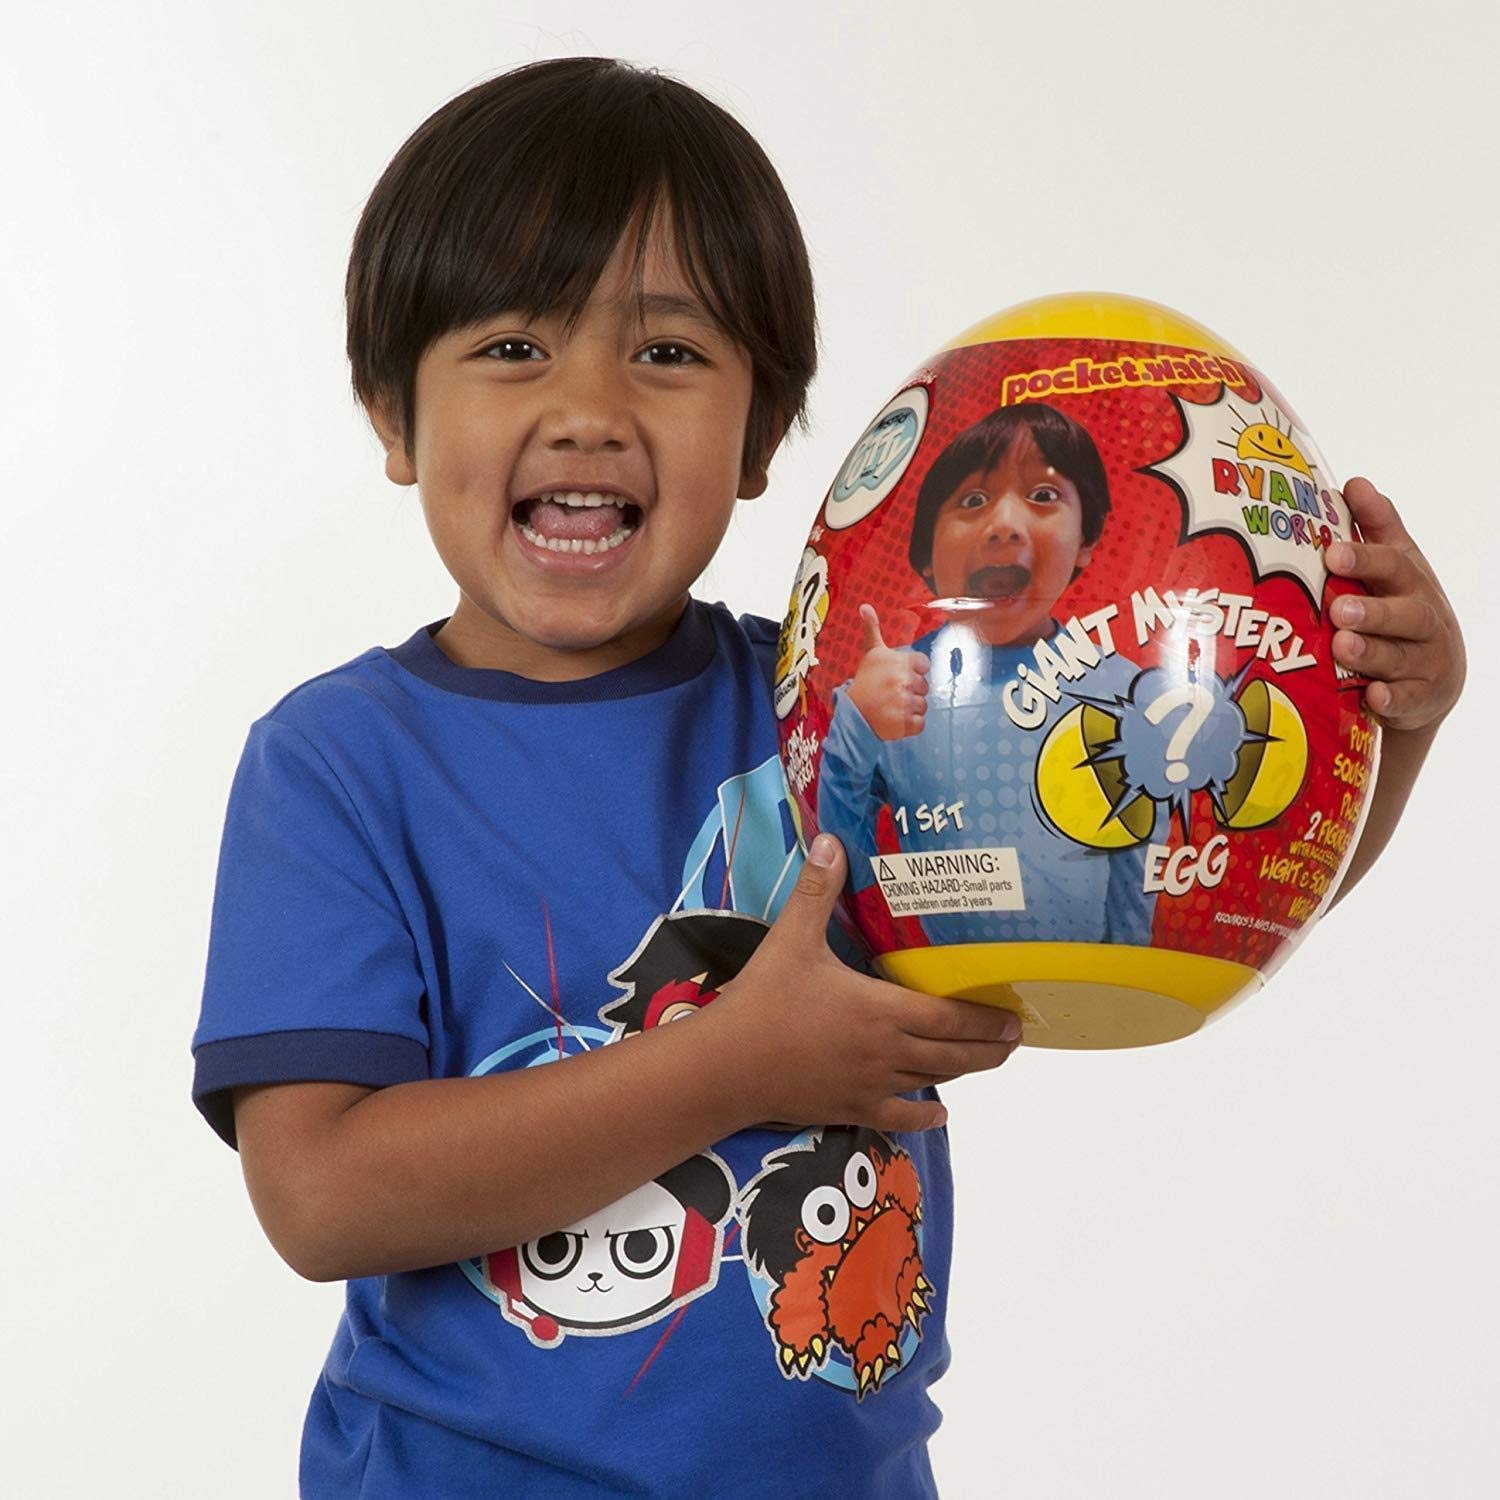 Ryan holding his Ryan World Surprise Egg holiday toys